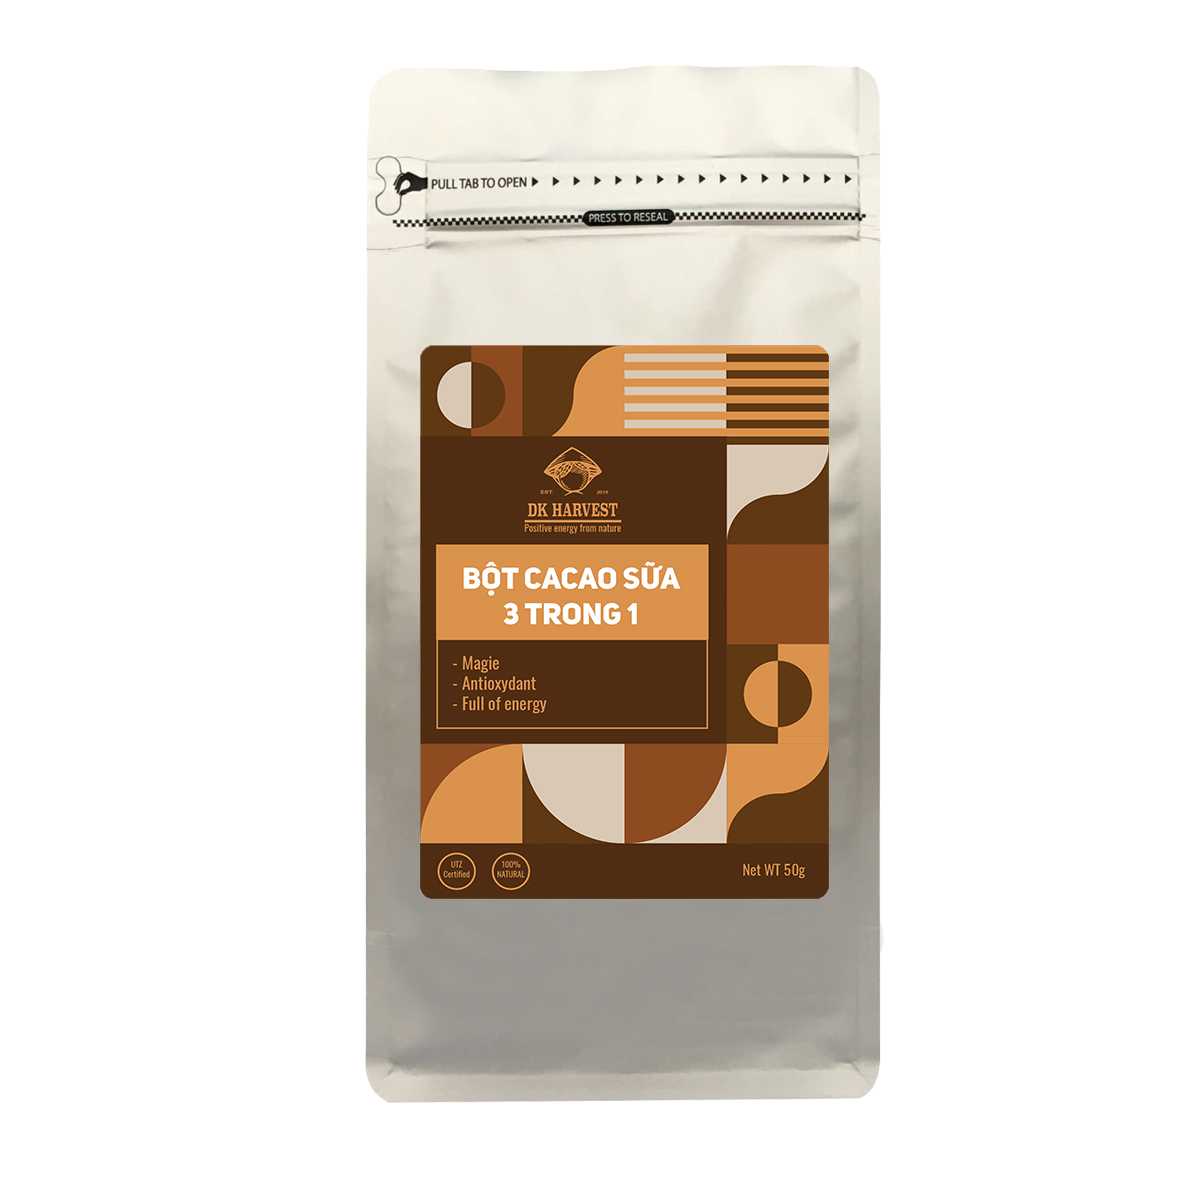 Bột Cacao Sữa 3 trong 1 DK Harvest - 50g